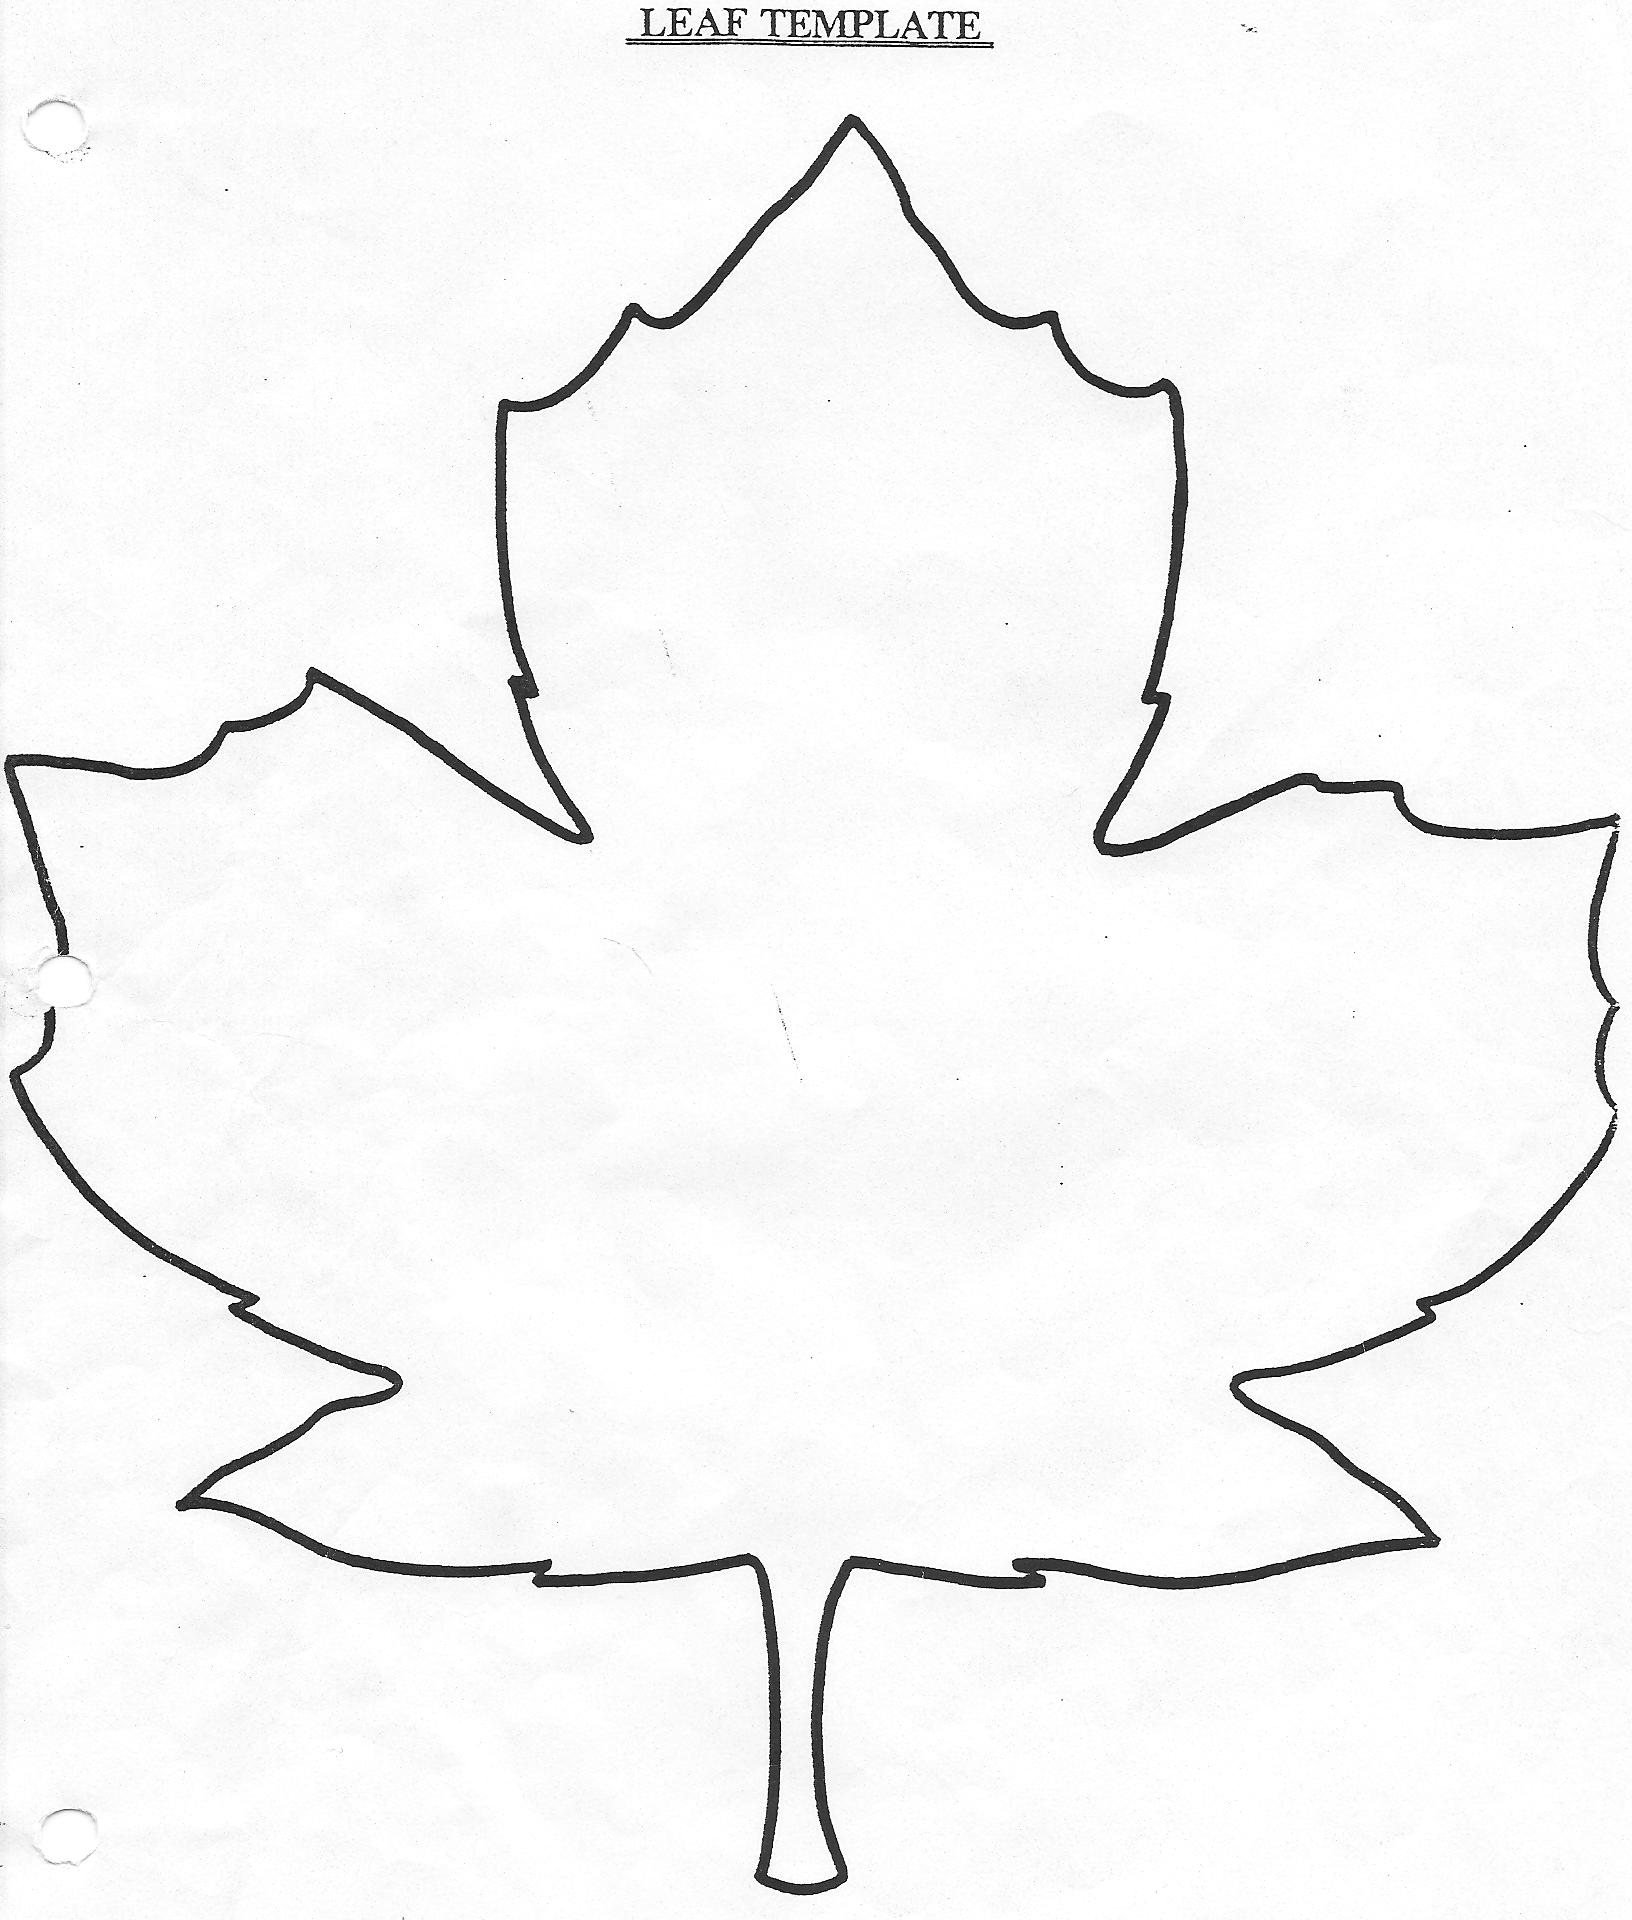 Leaf Drawing Outline At Getdrawings Free For Personal Use Leaf